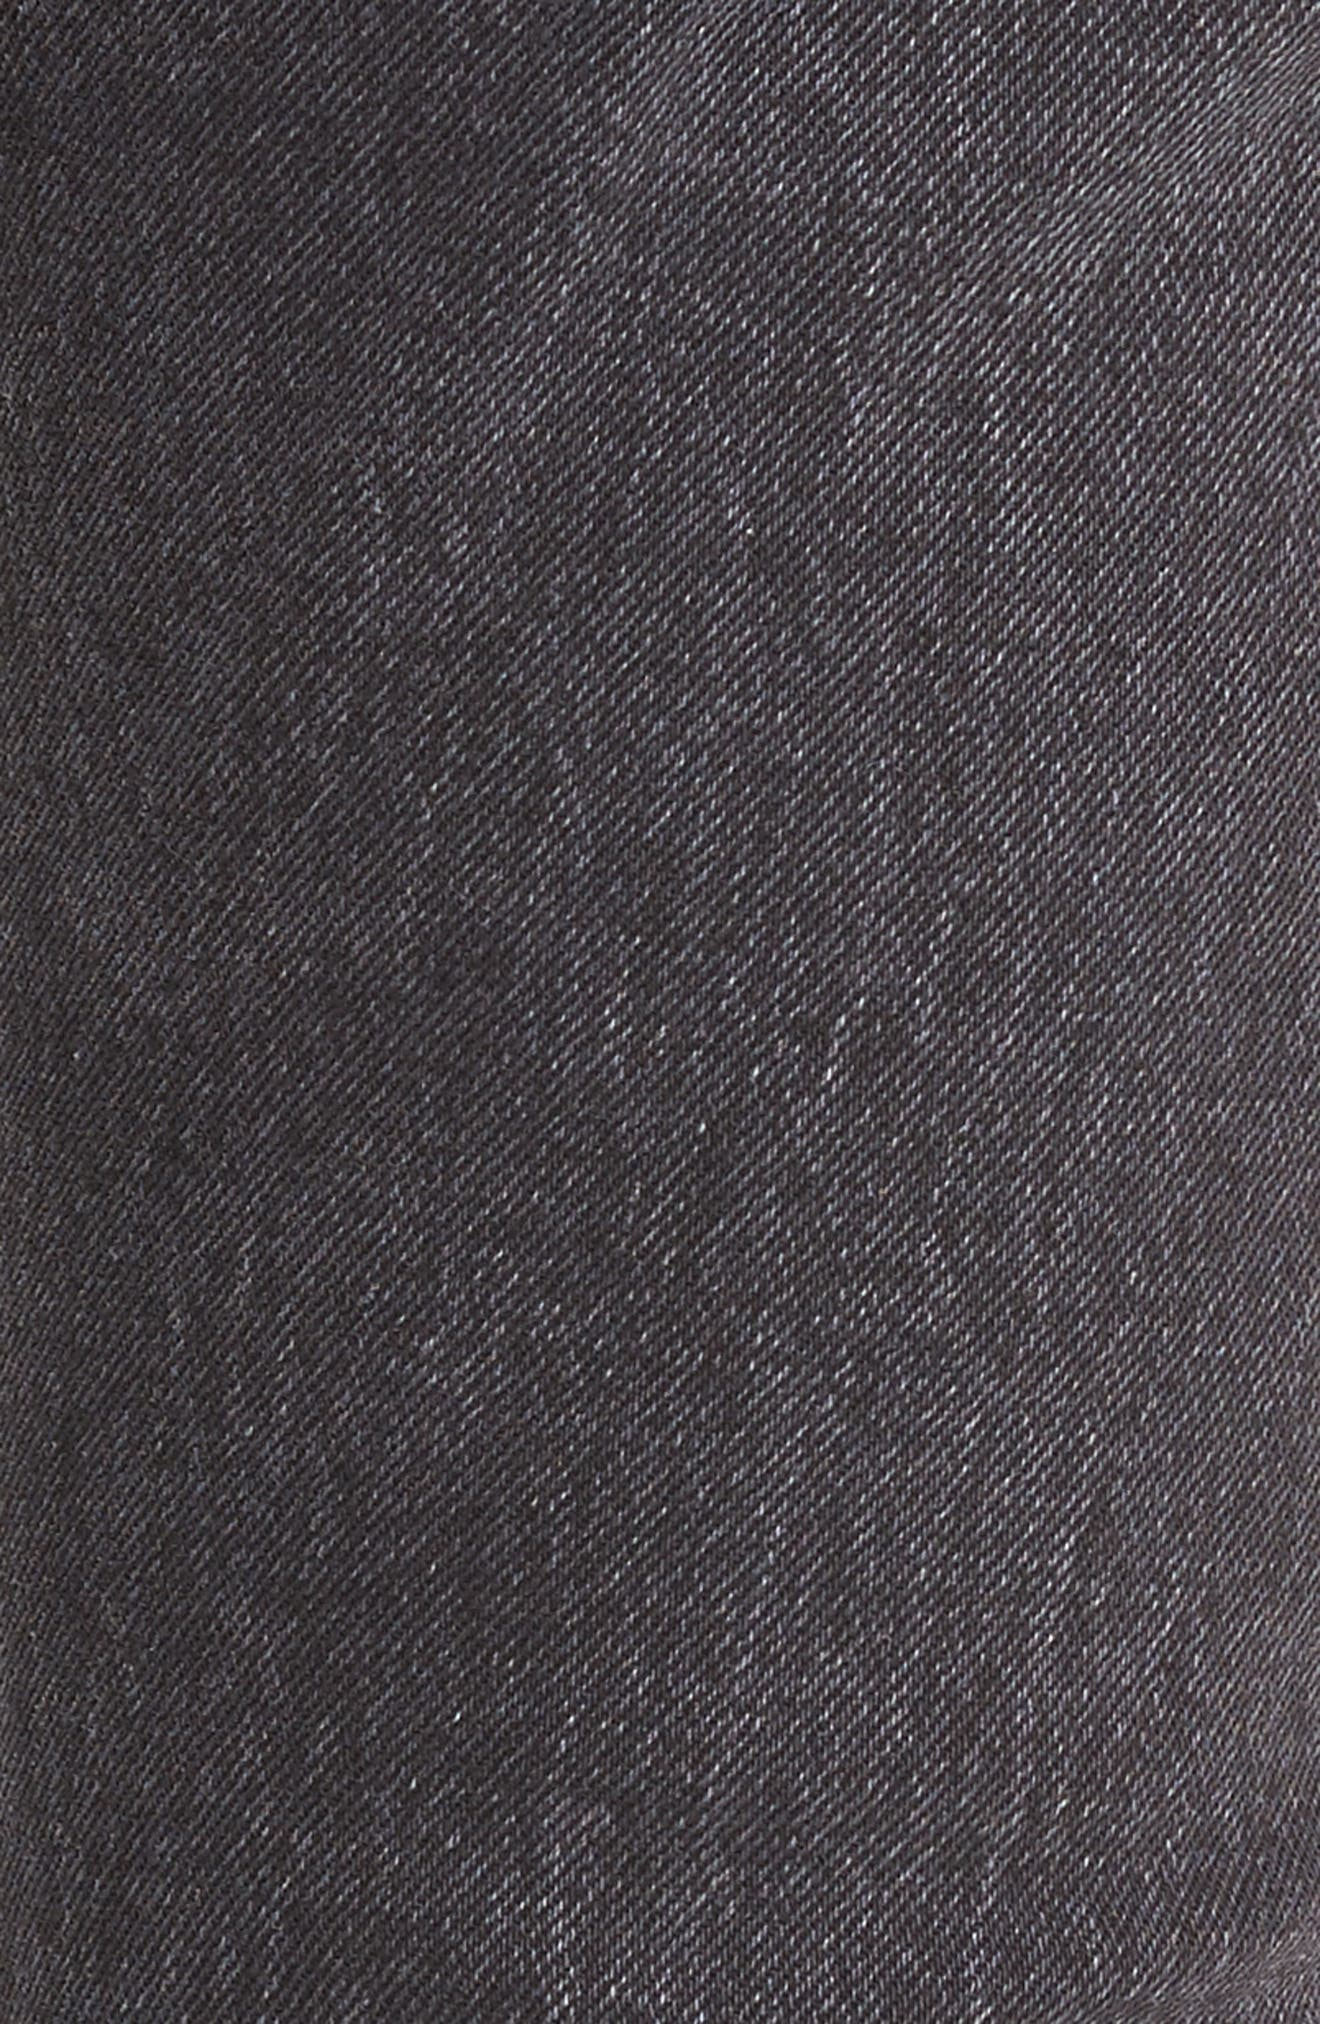 501<sup>®</sup> High Waist Ripped Skinny Jeans,                             Alternate thumbnail 6, color,                             Well Worn Black